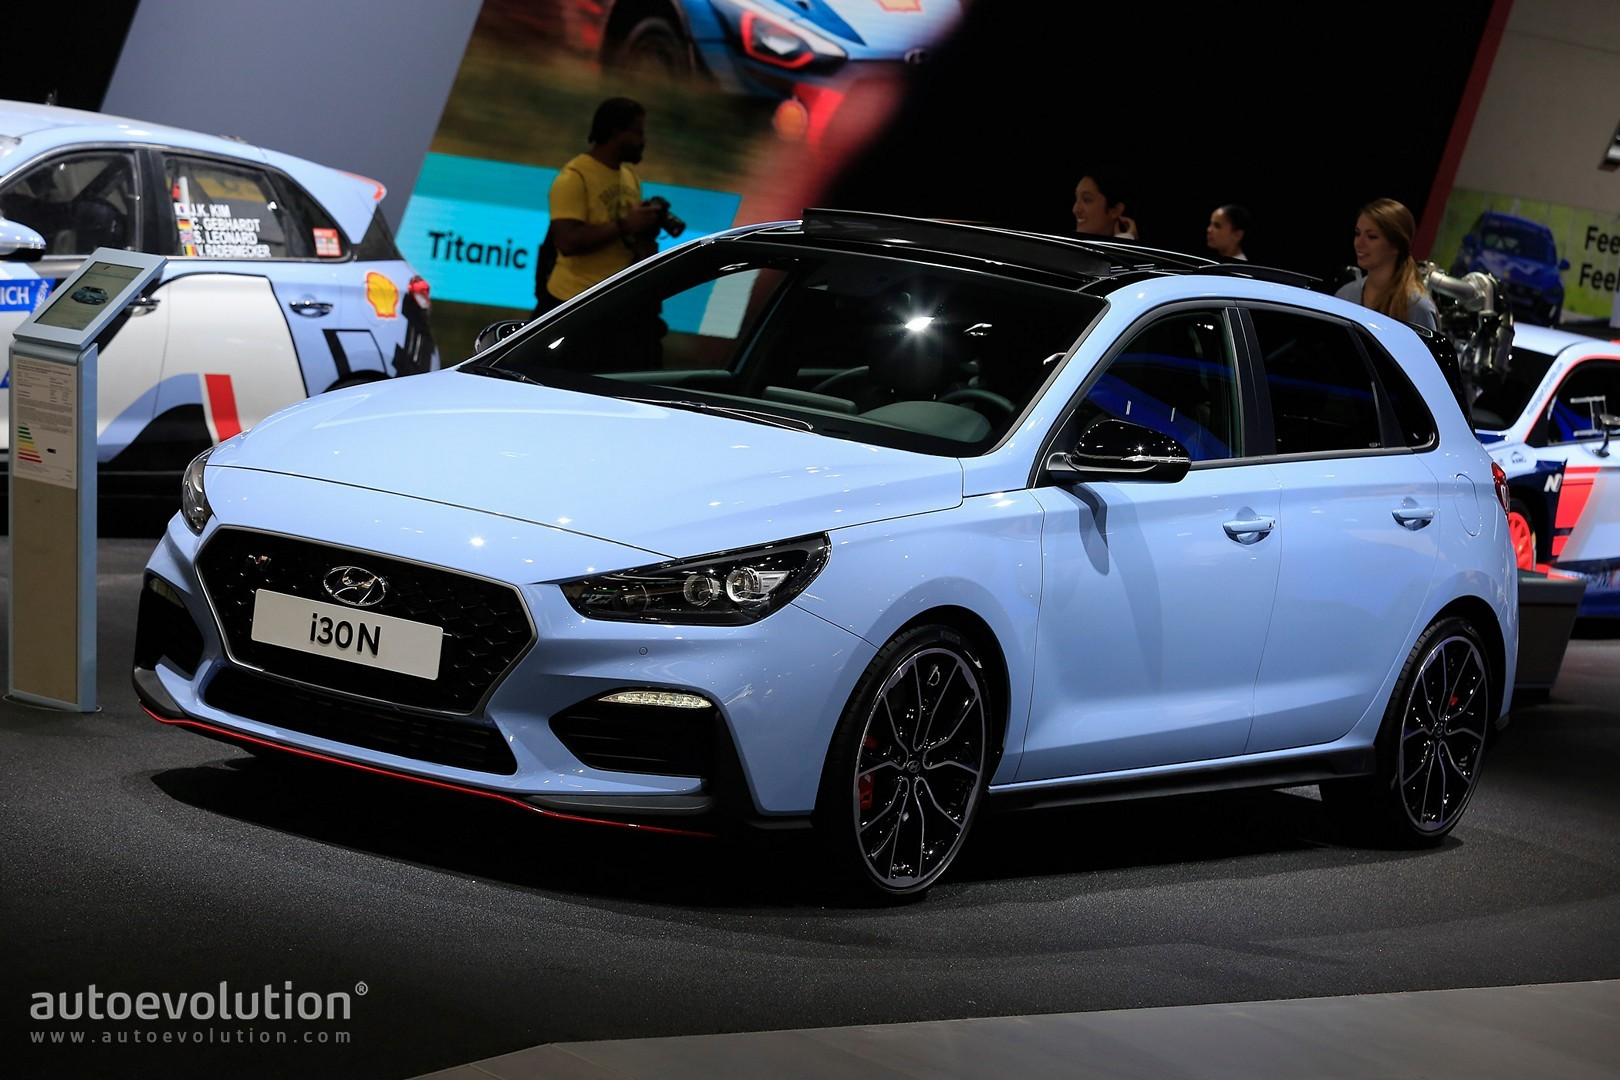 hyundai i30 n uk pricing announced a 24 995 bargain autoevolution. Black Bedroom Furniture Sets. Home Design Ideas